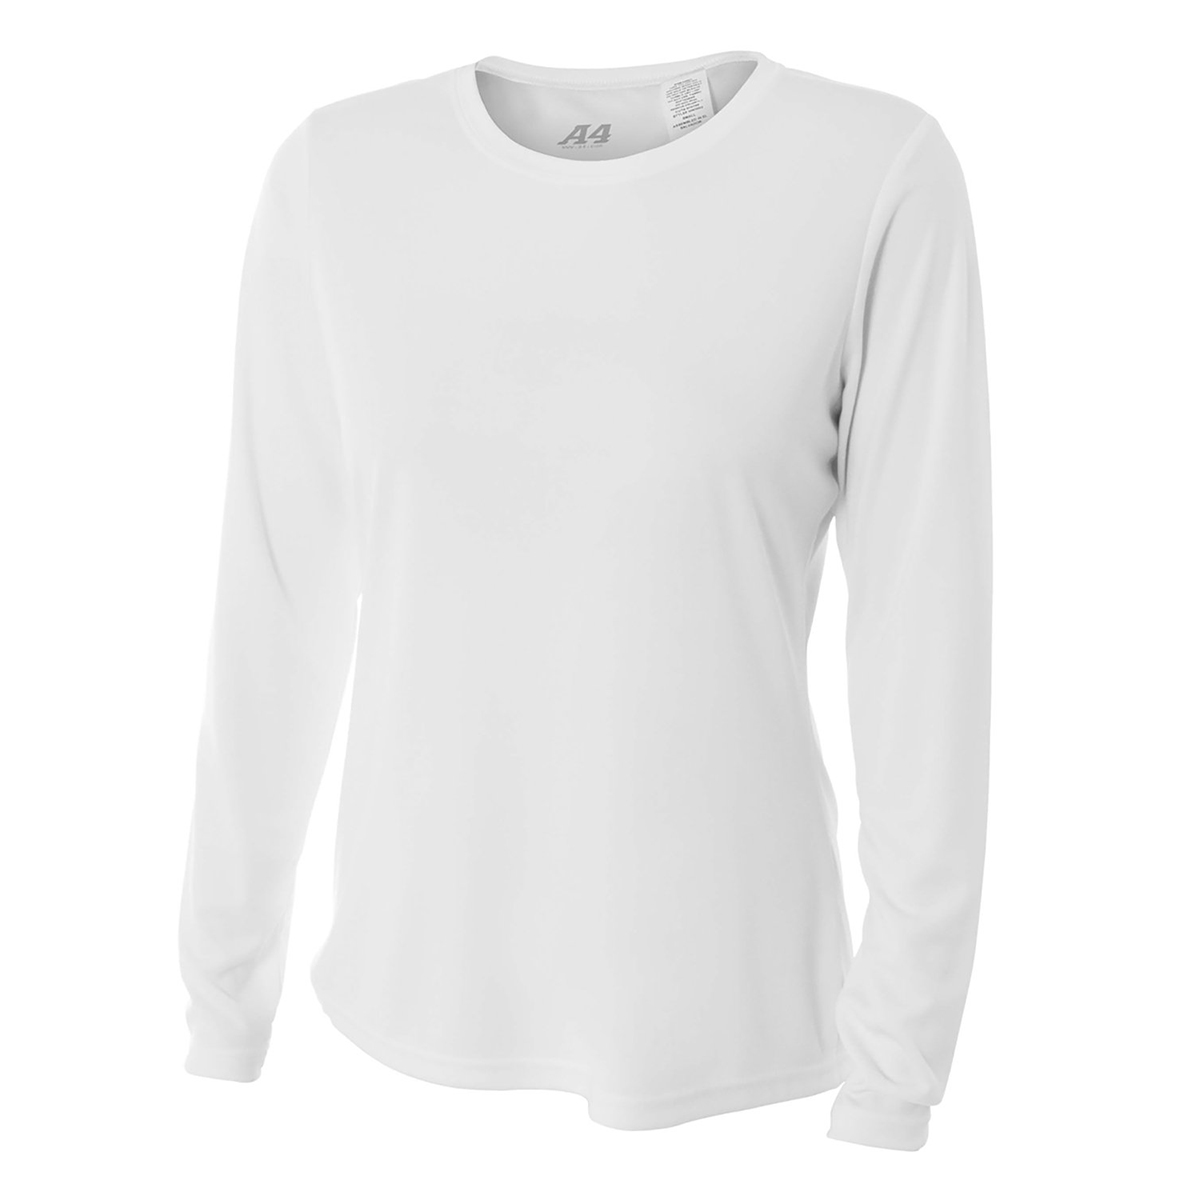 A4 Ladies Long Sleeve Performance Crew (NW3002)